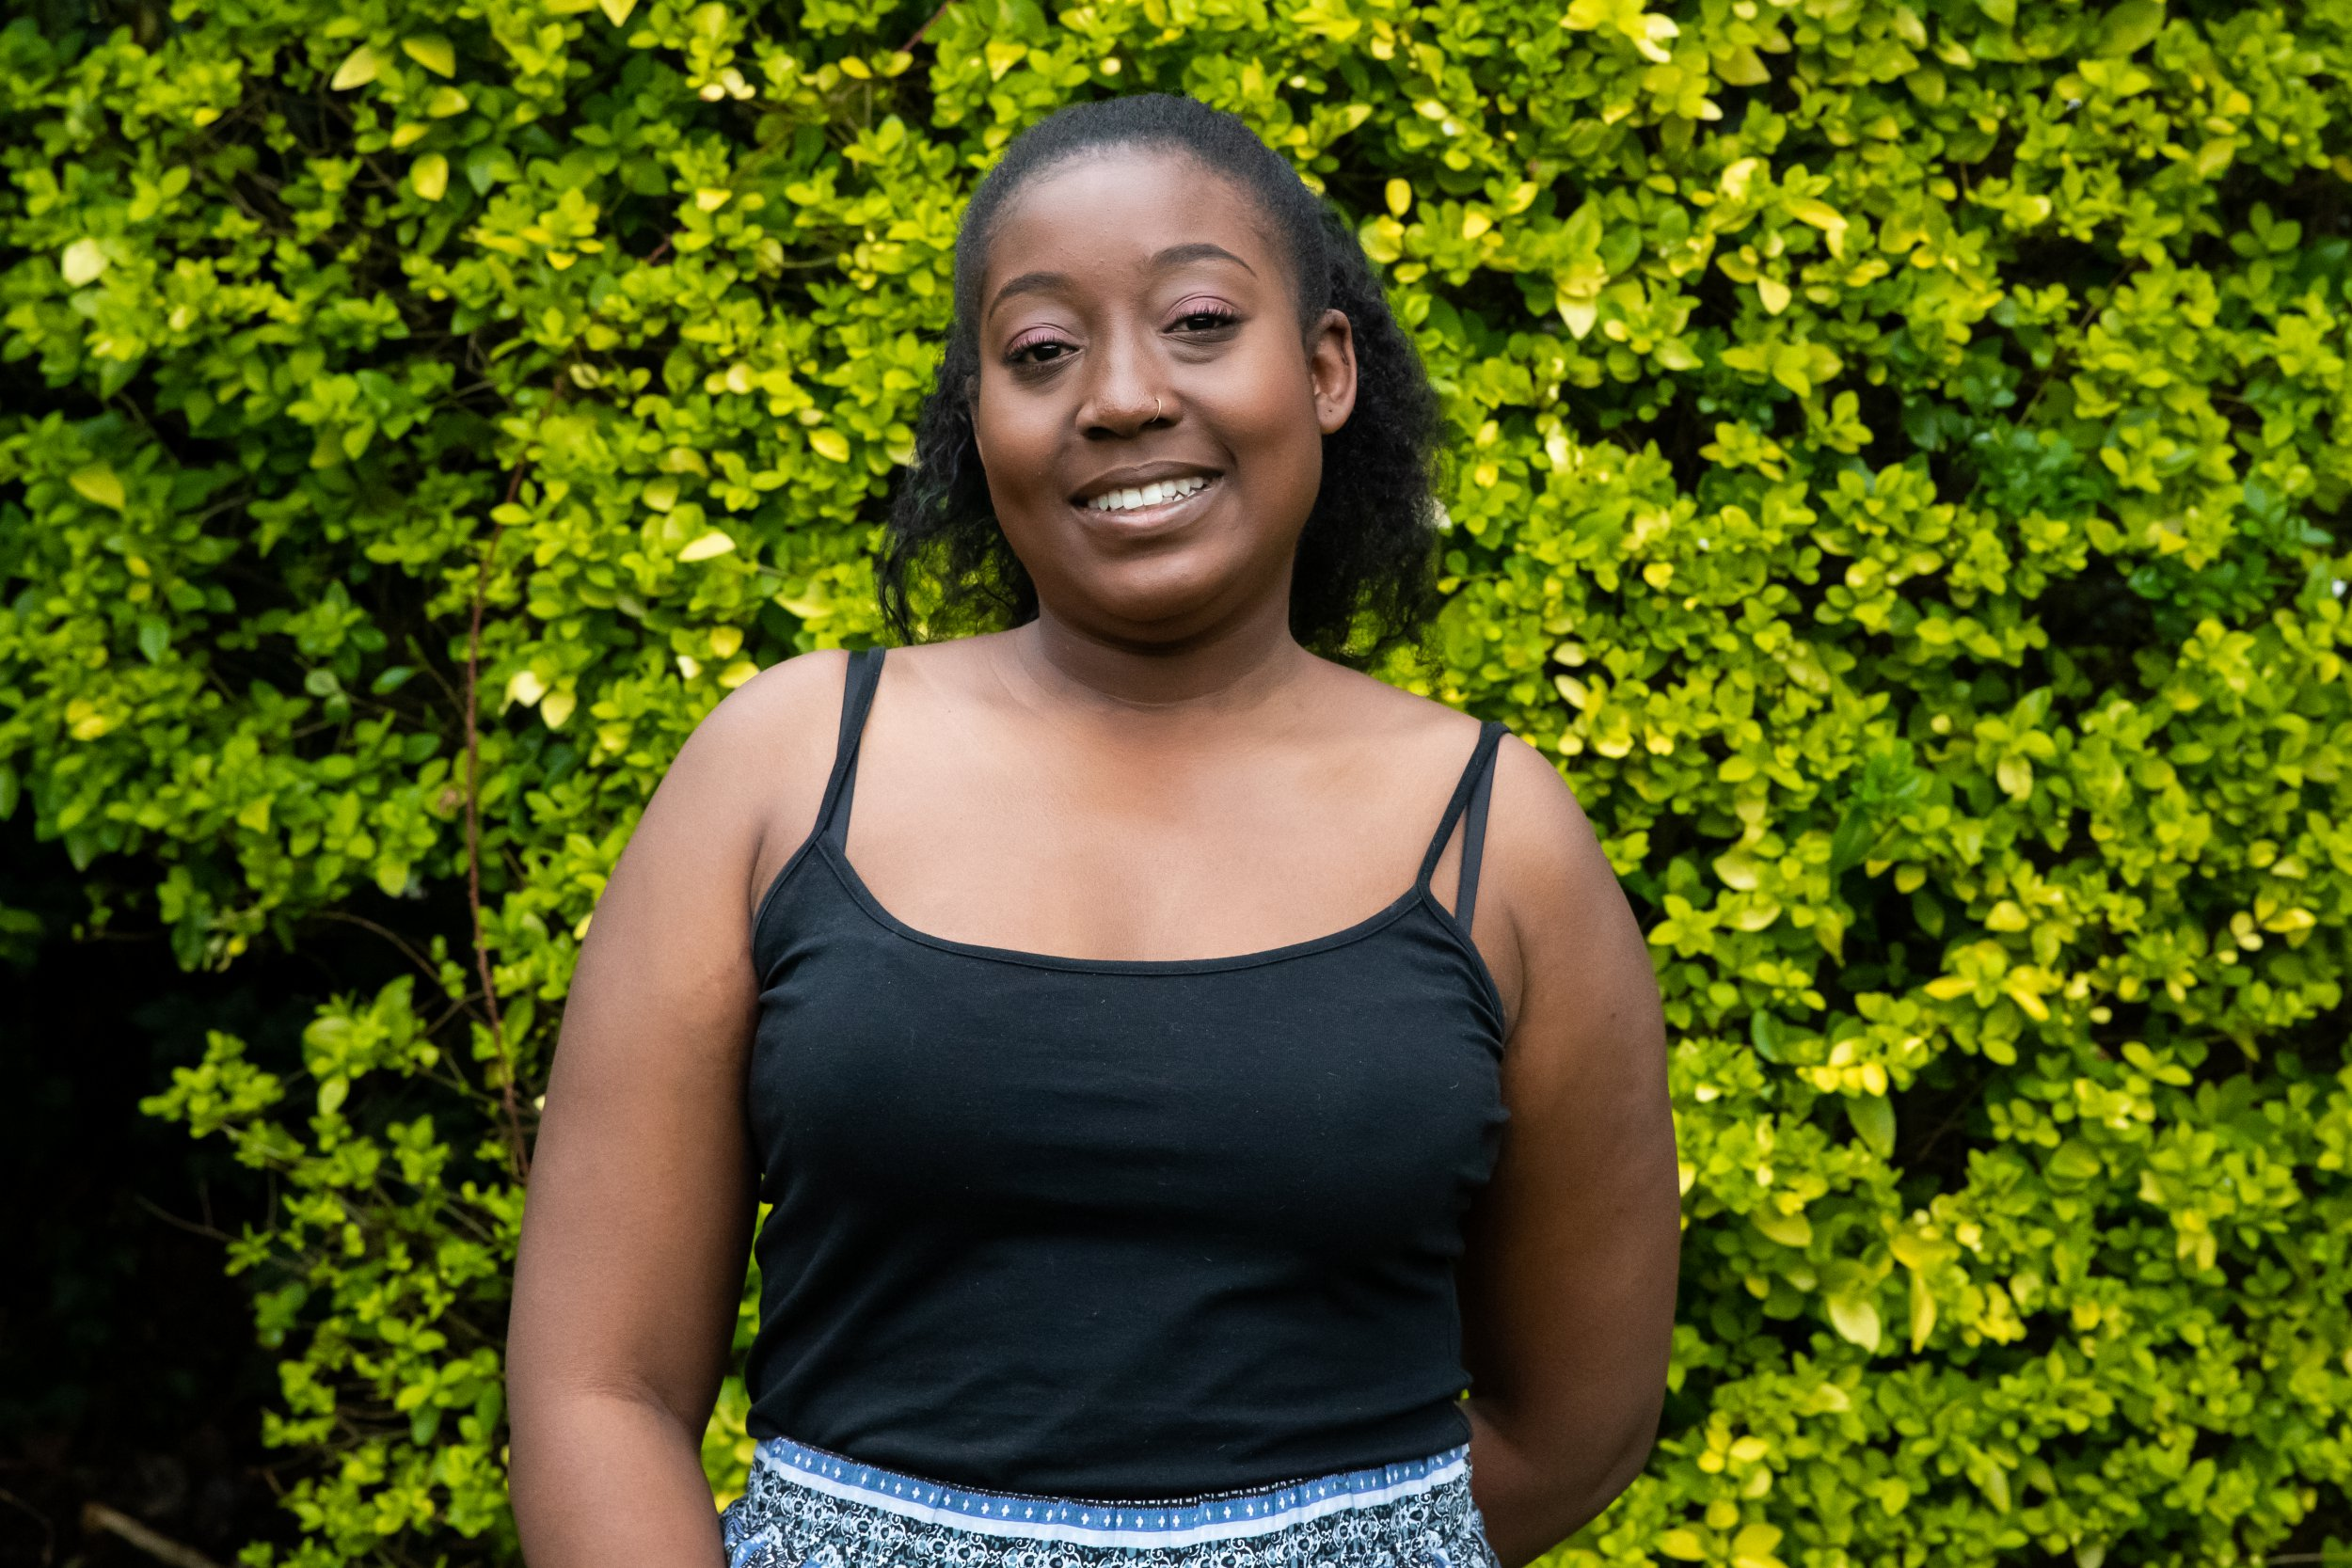 You Don't Look Sick: 'I have sickle cell anaemia but people think I'm lying when I say I'm ill'